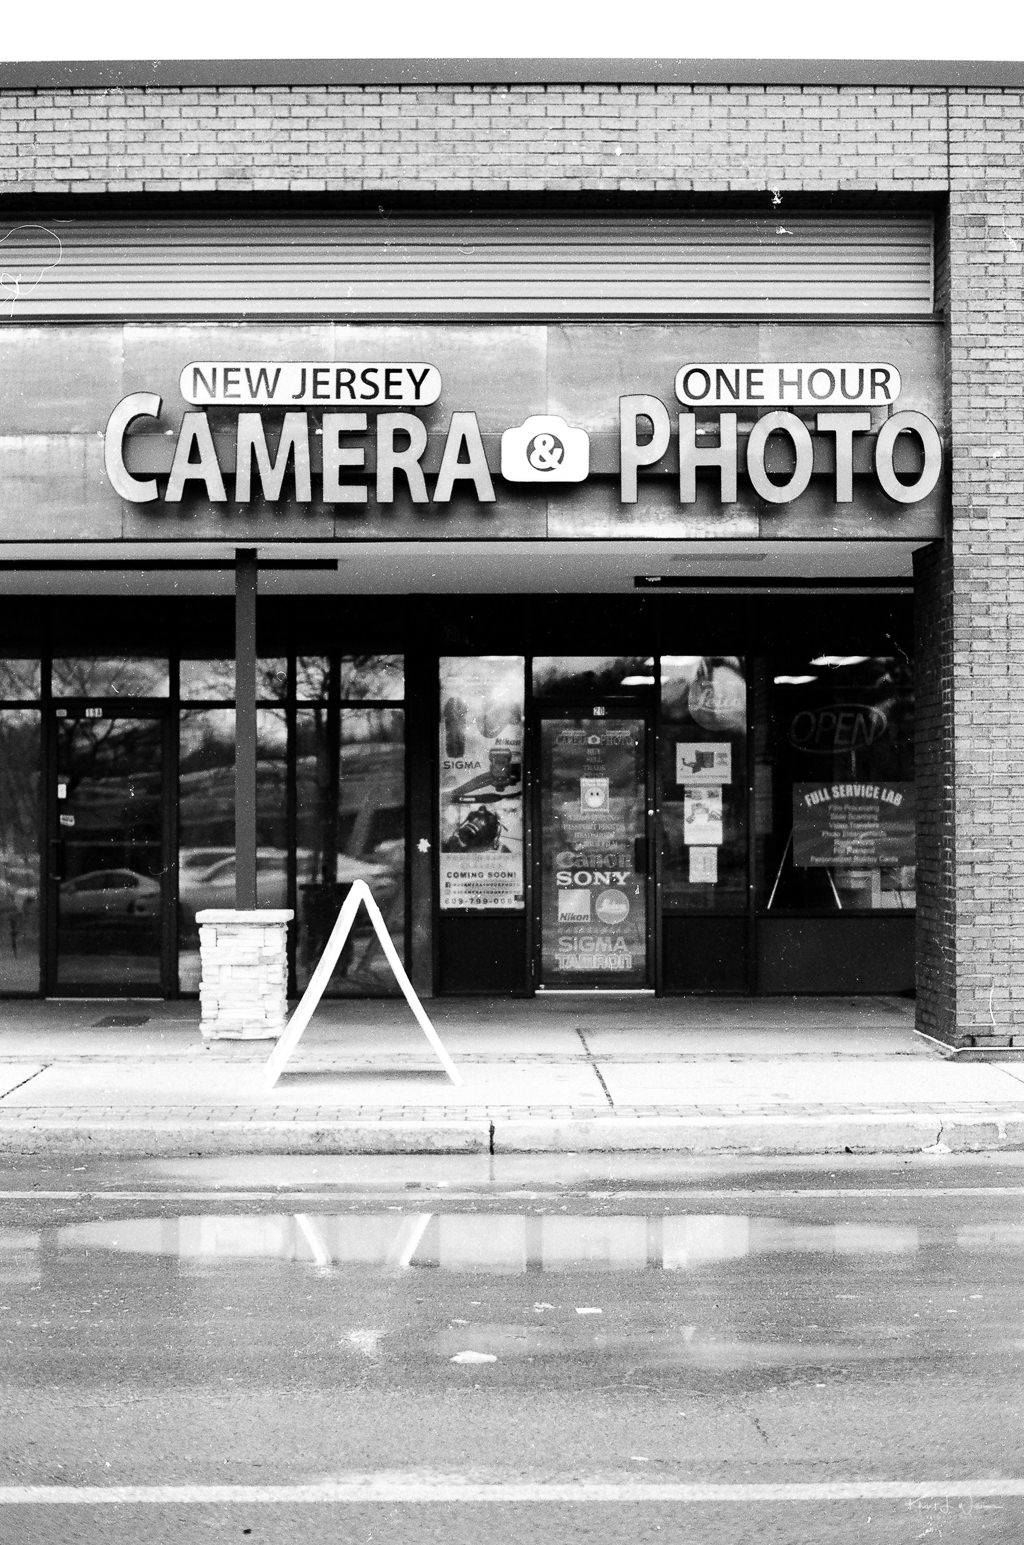 New Jersey Camera and One Hour Photo